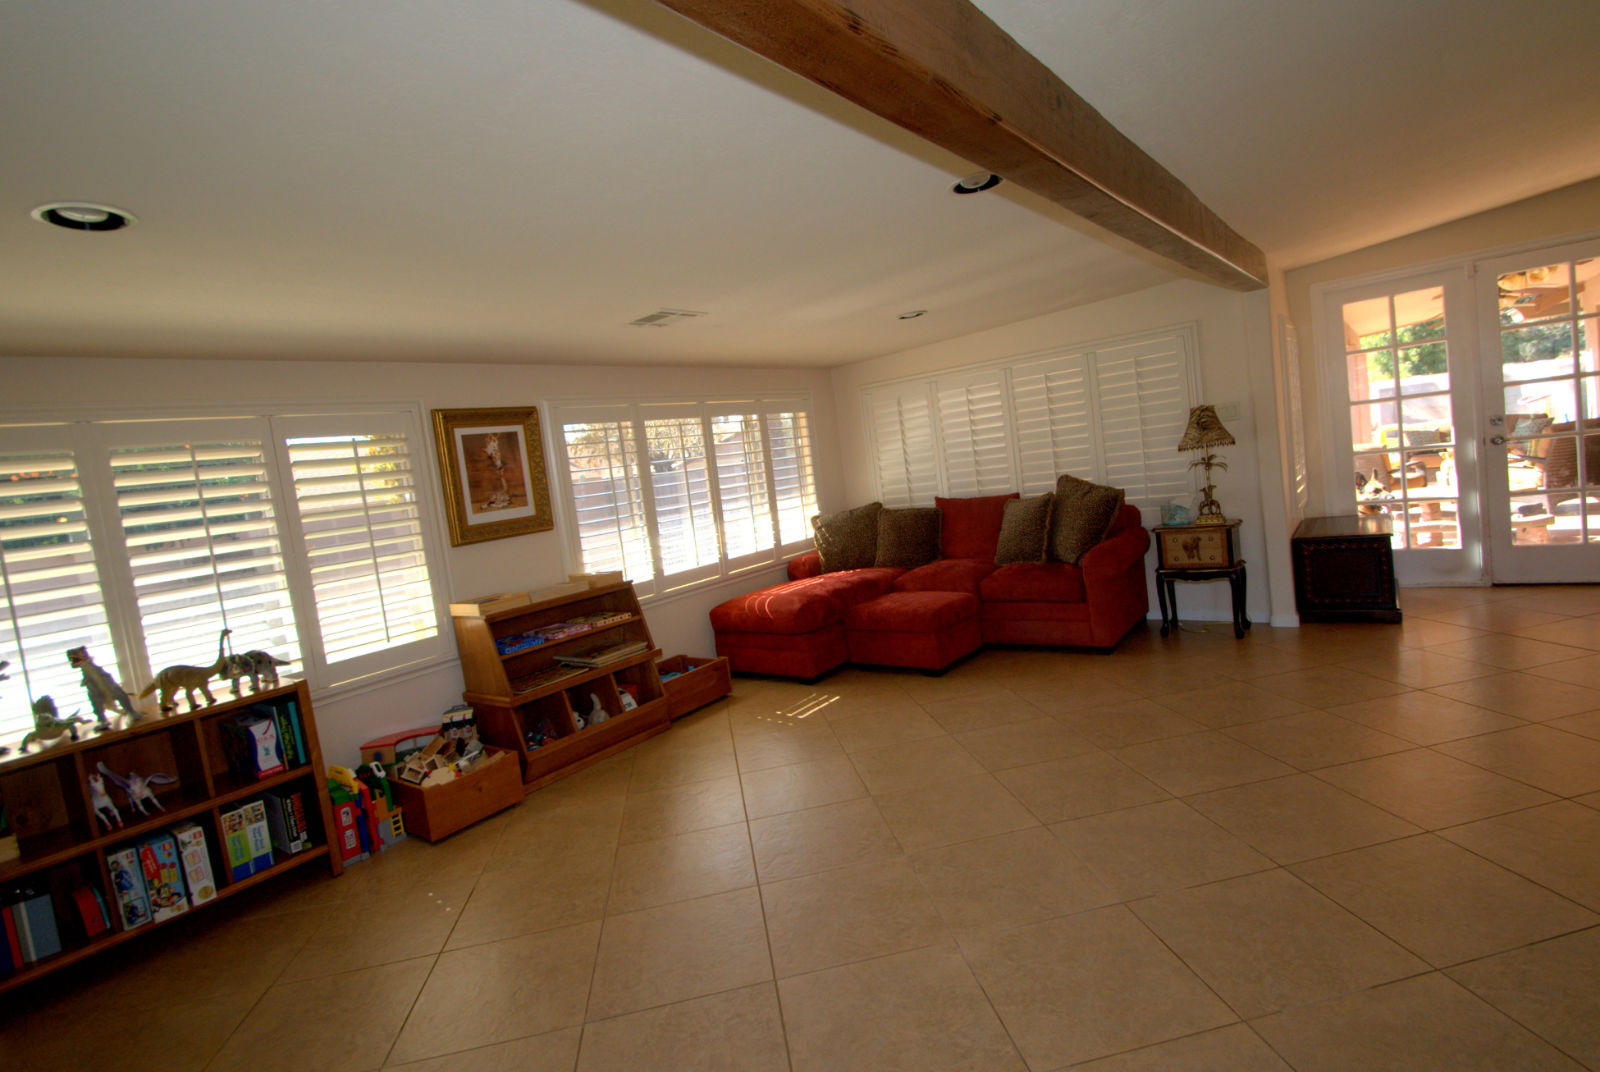 Alternate view of family room